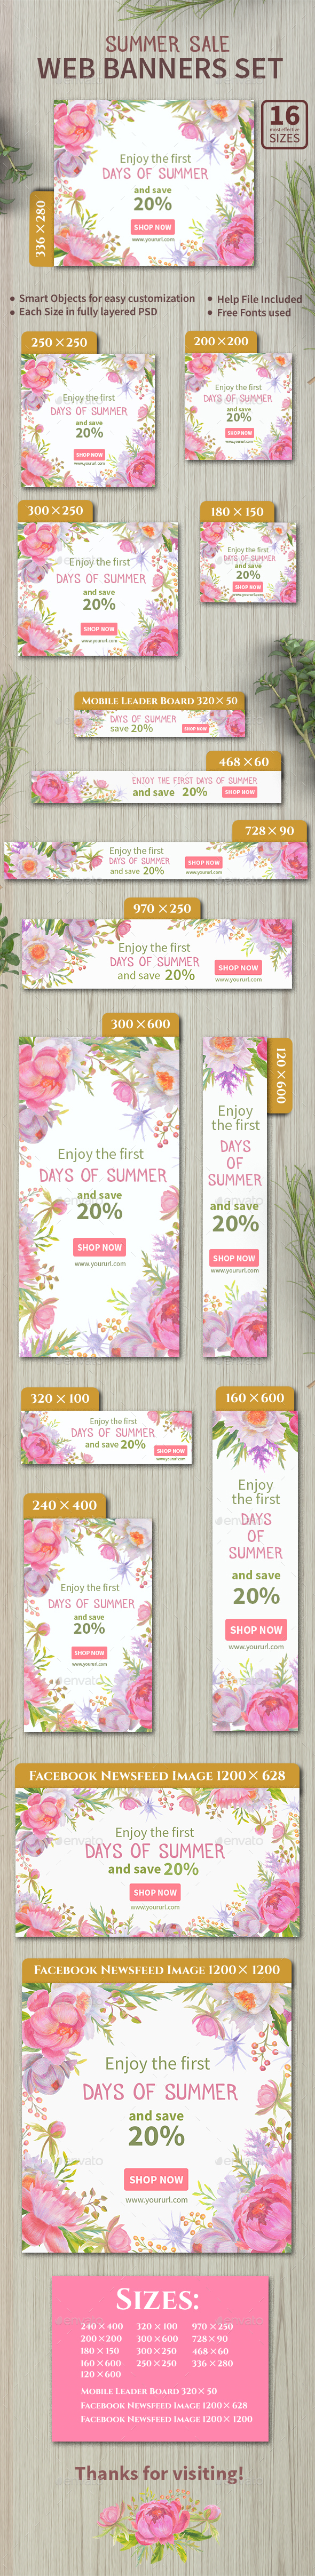 Summer Sale Web Banners Set - Banners & Ads Web Elements